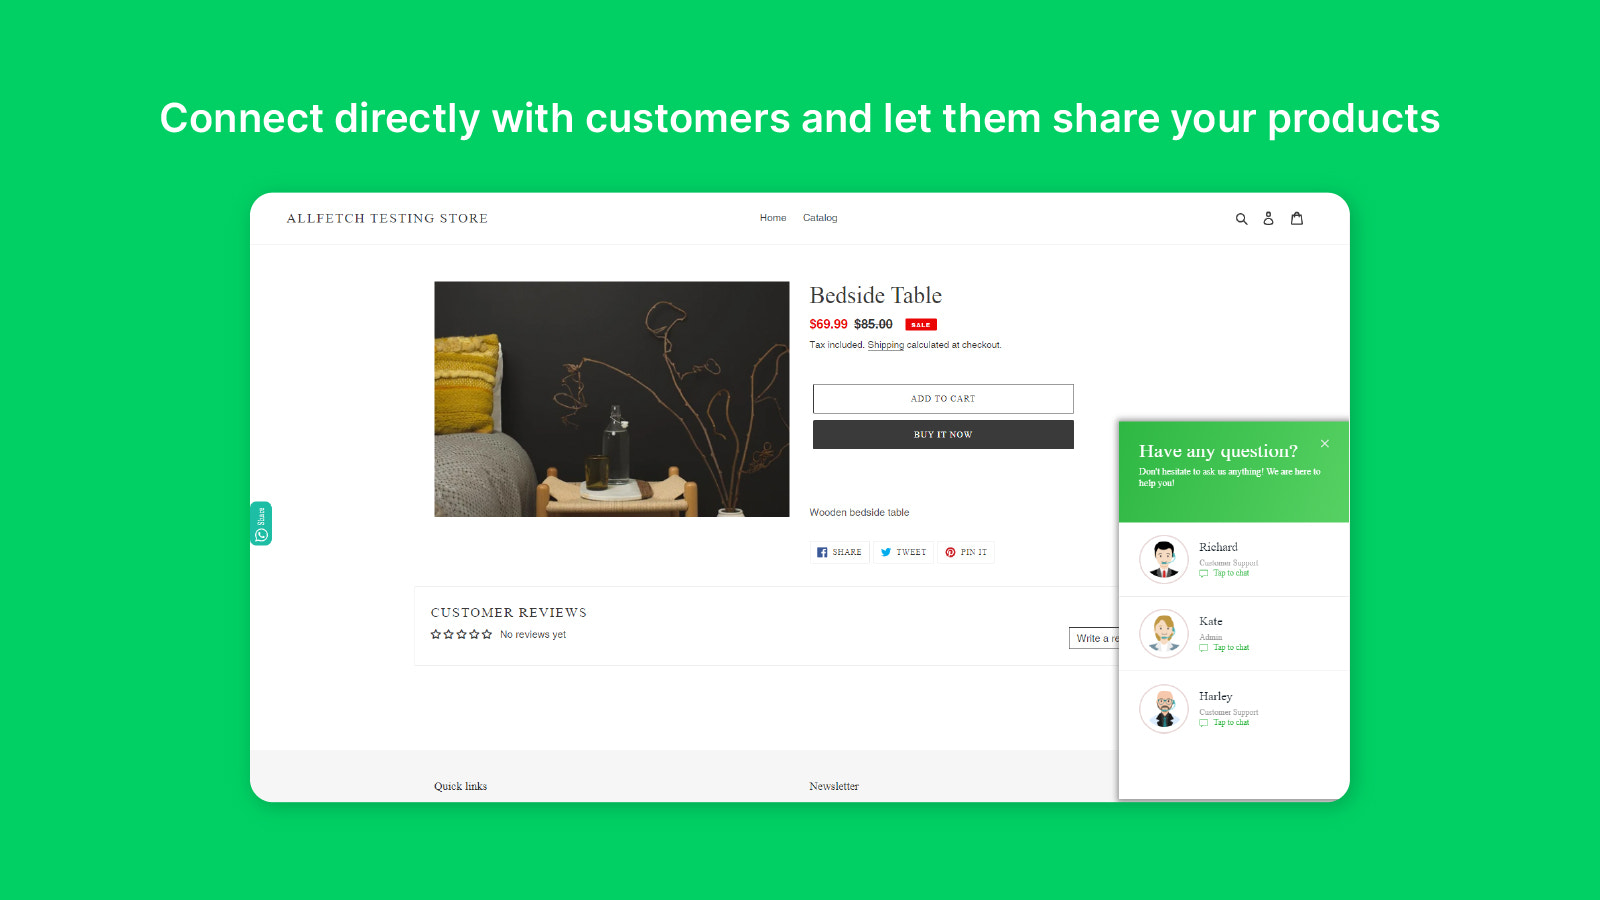 Connect directly with customers and let them share your products